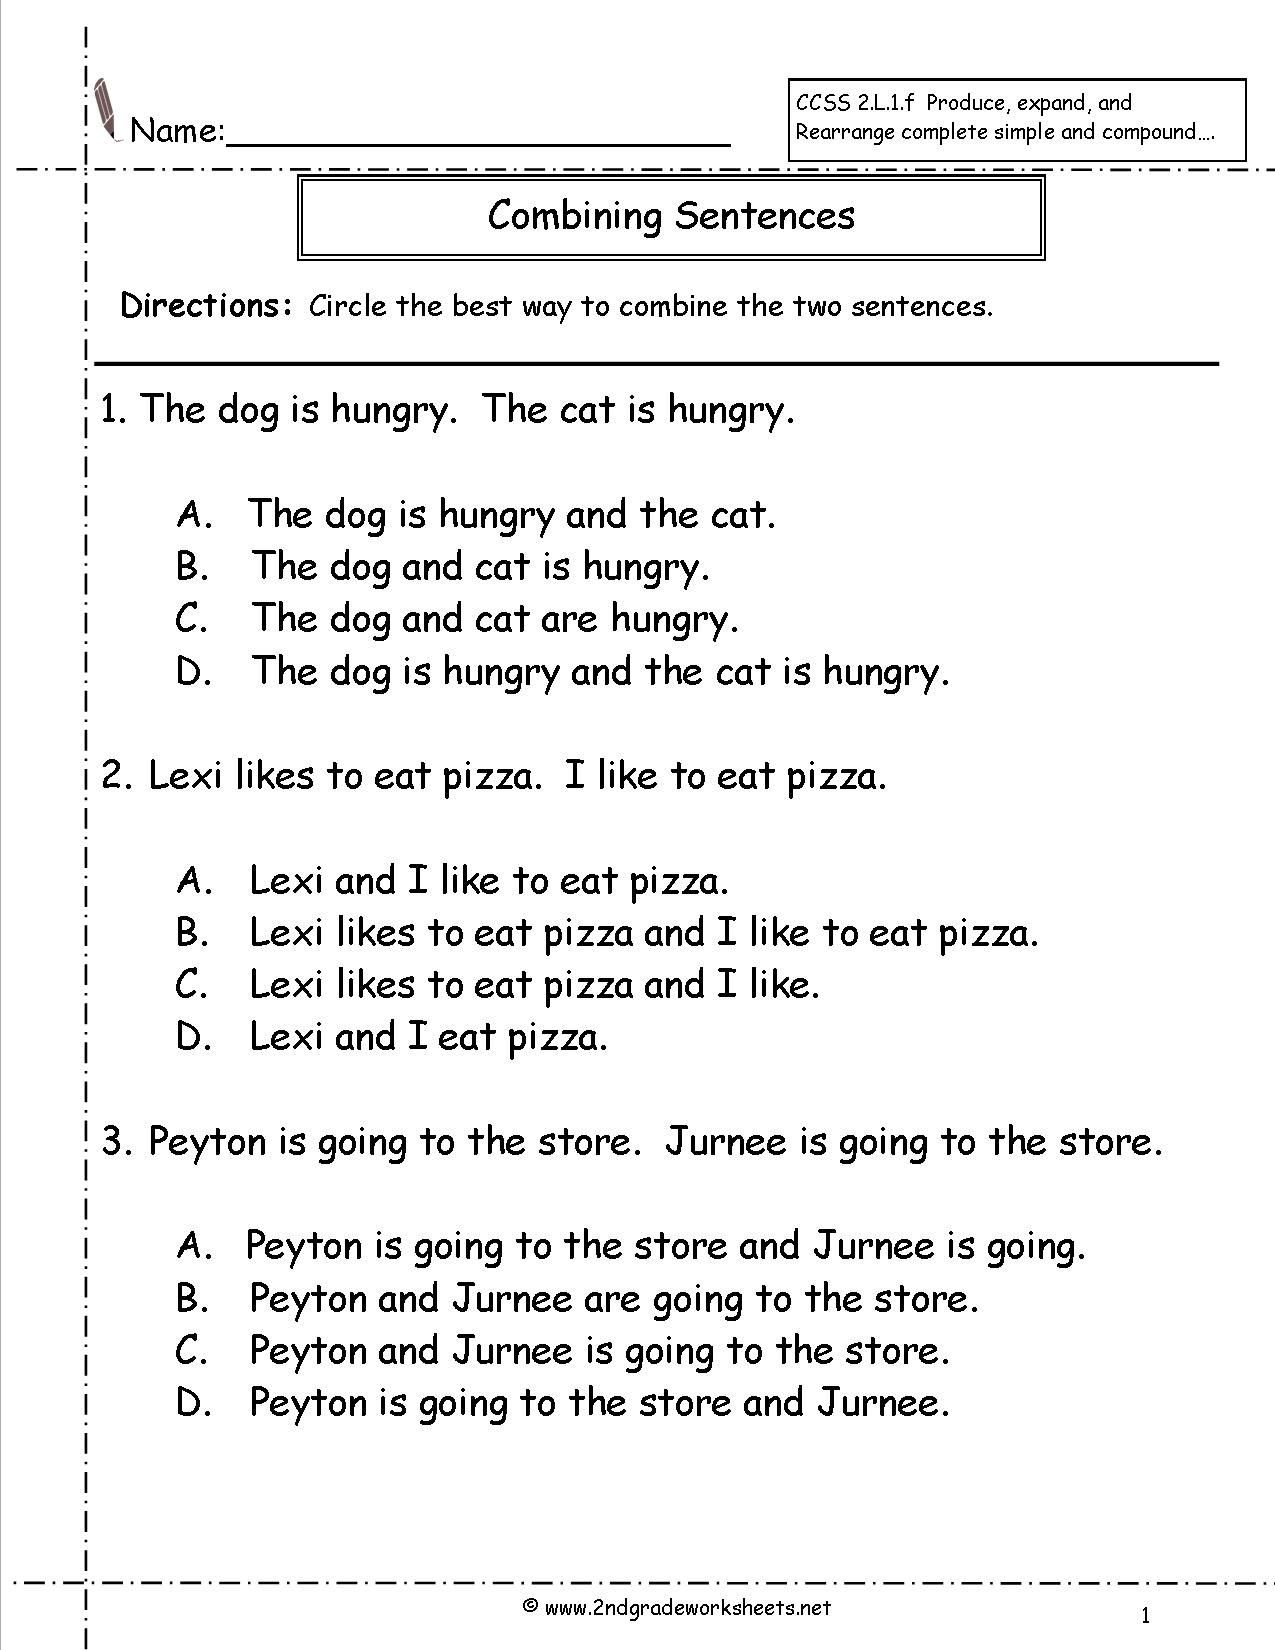 Combining Sentences Worksheet 3rd Grade Bining Sentences Worksheet with Images